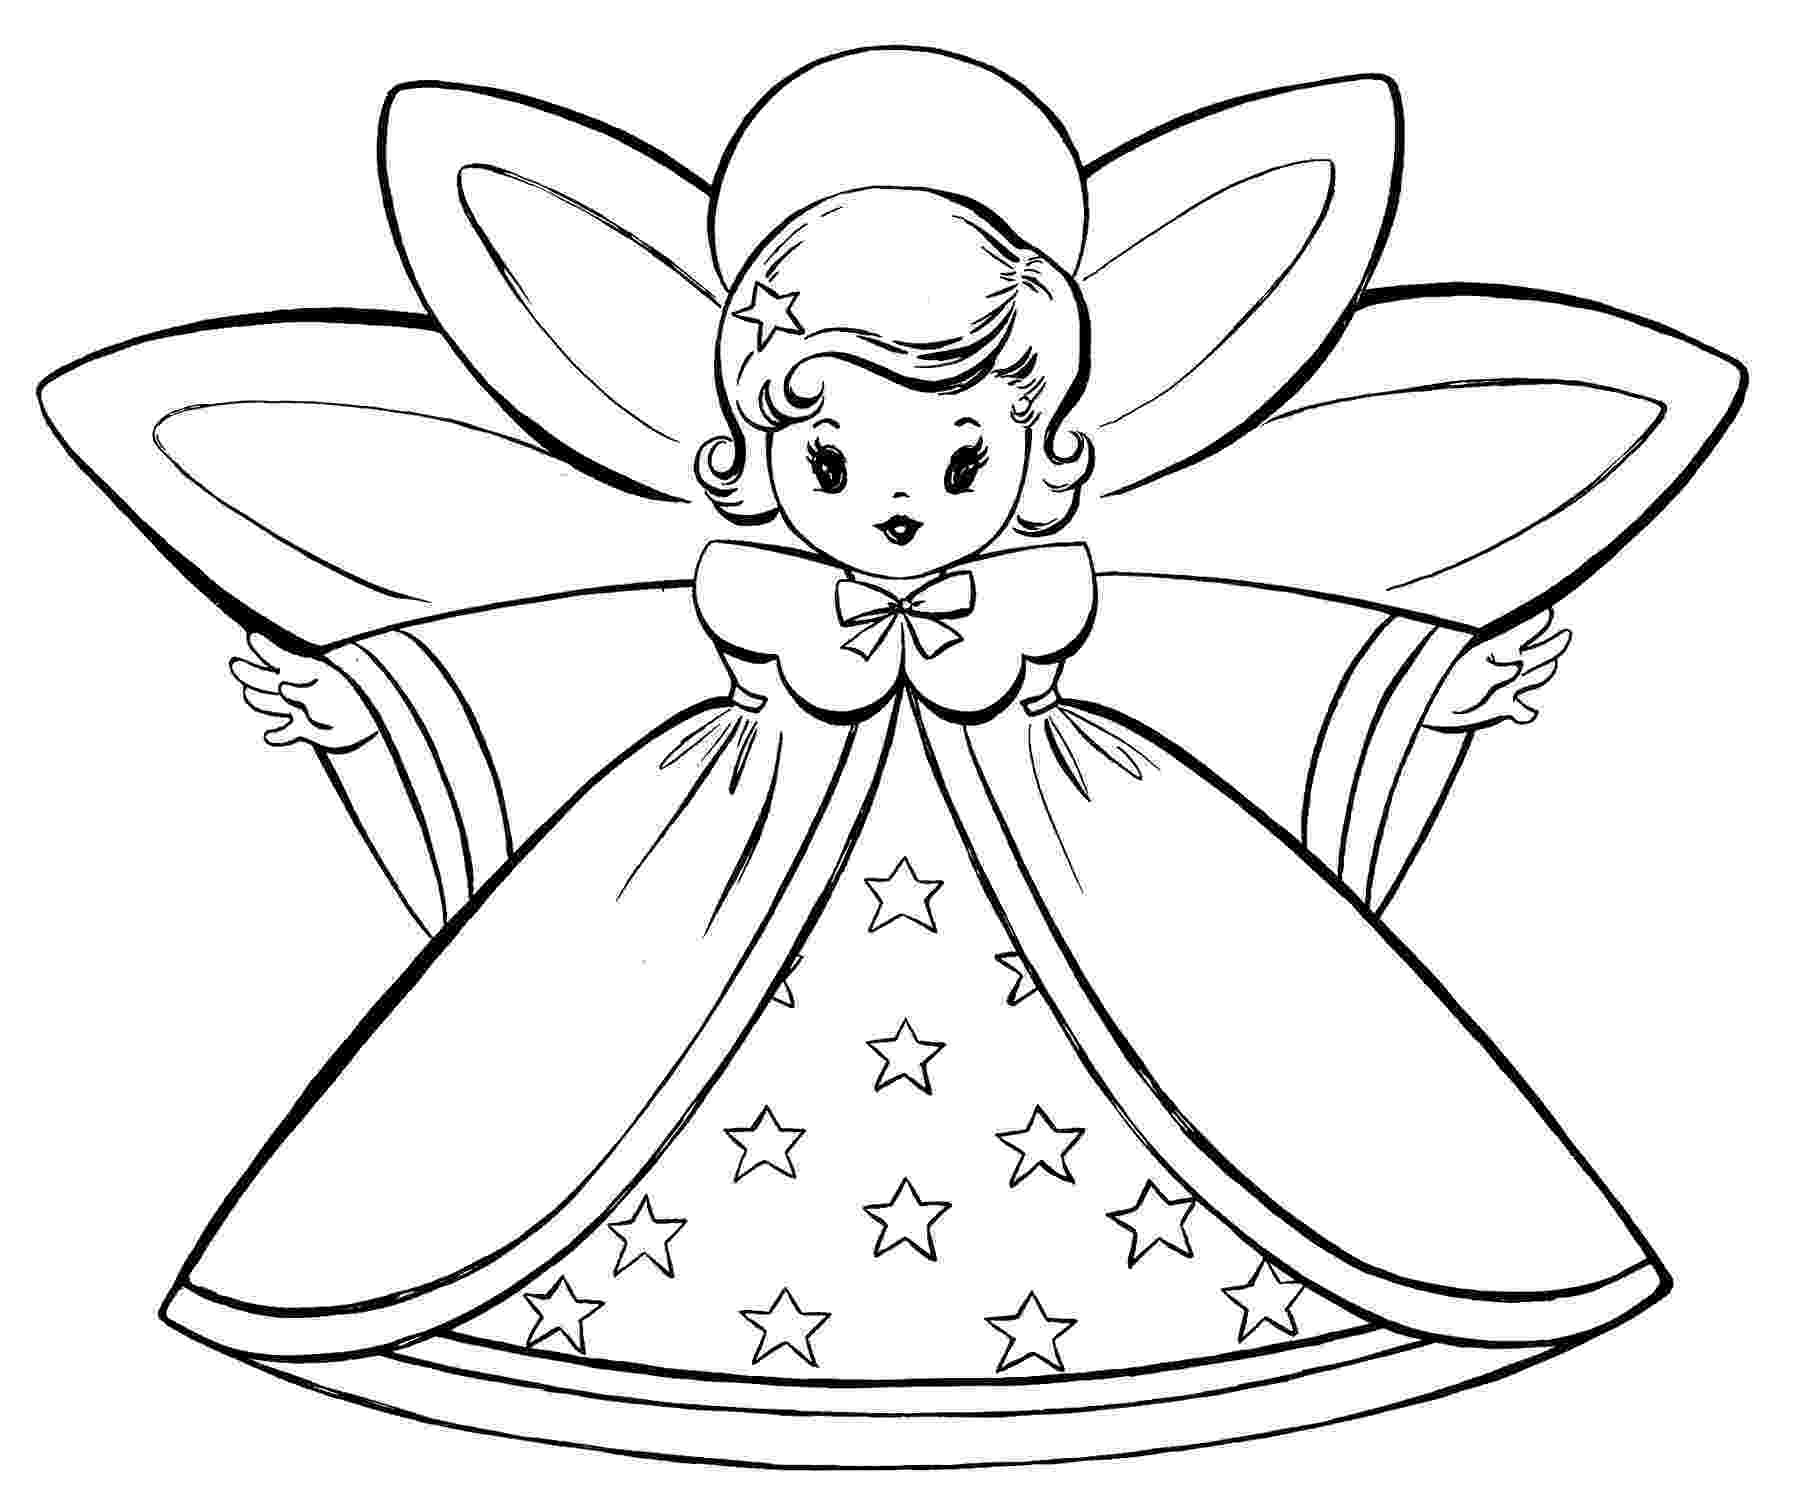 pictures of angels to color angel coloring pages pictures angels color to of